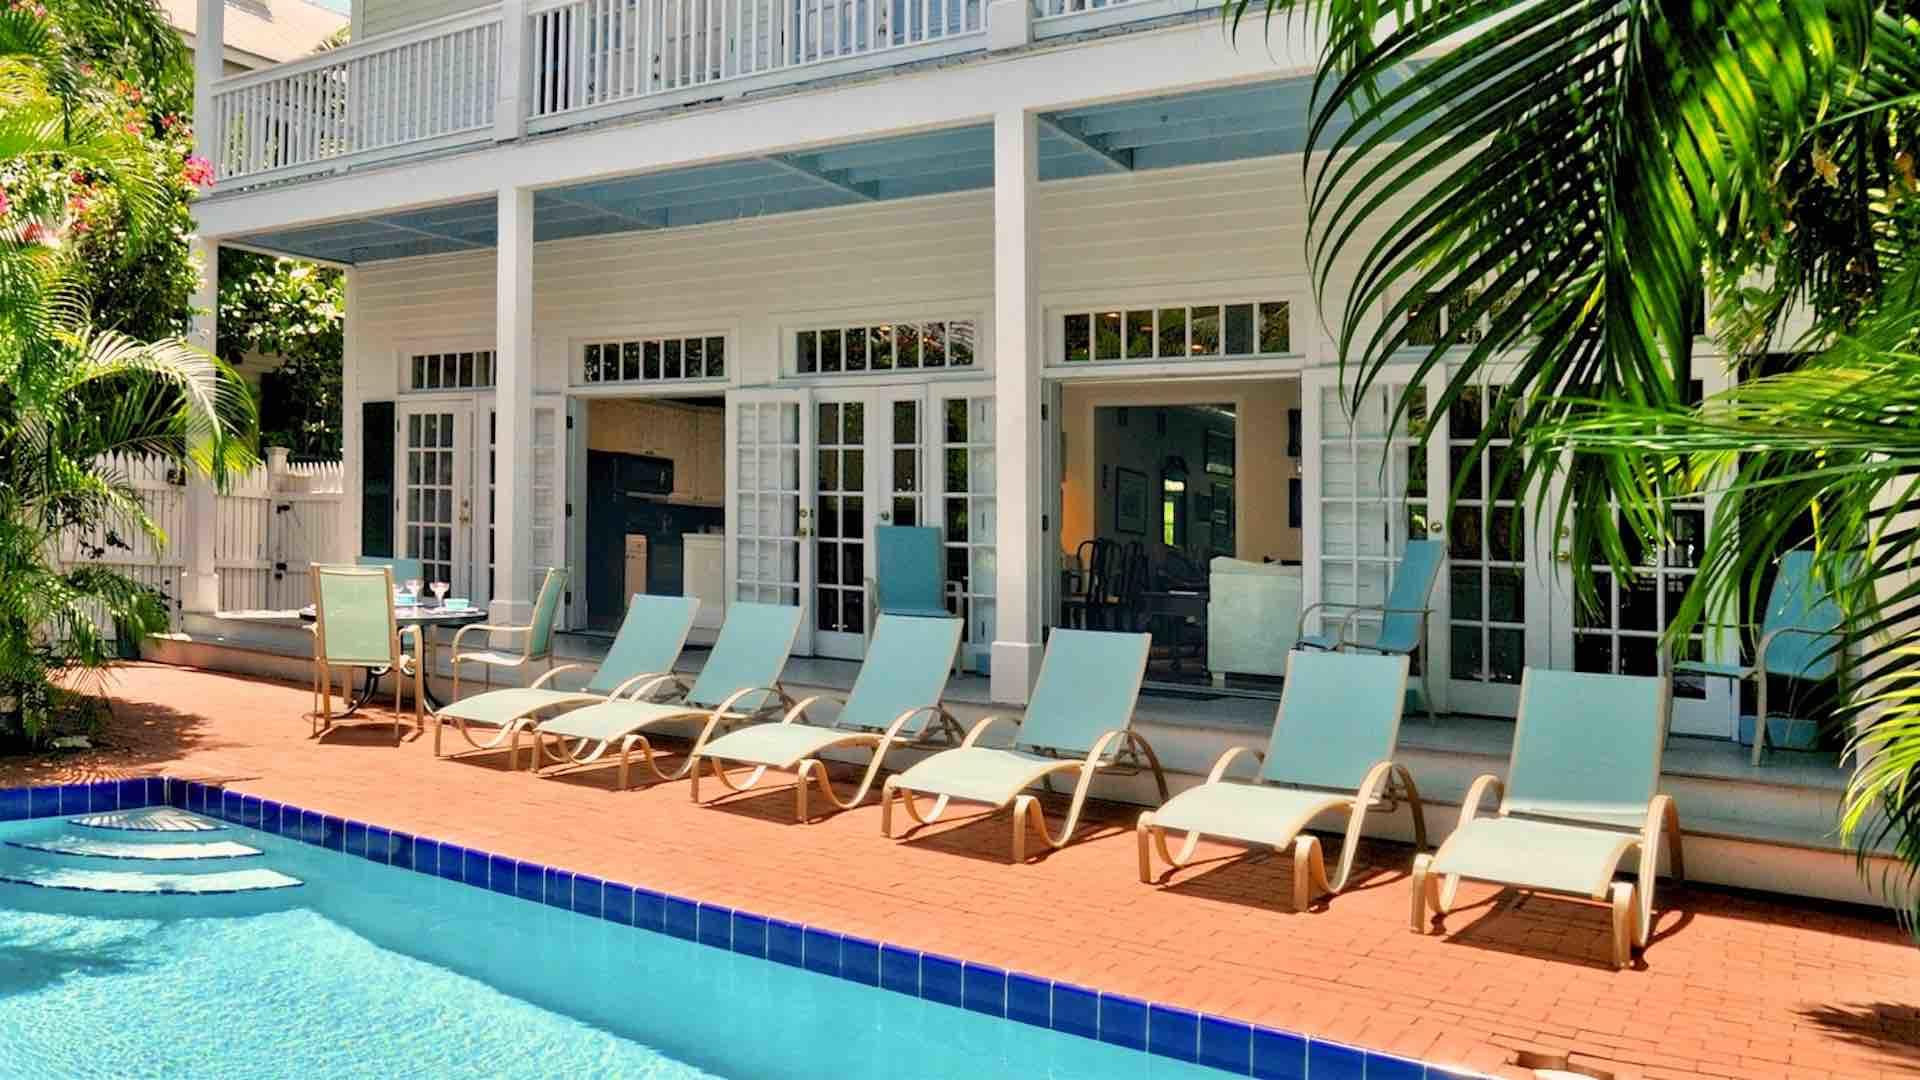 The pool deck has plenty of seating for everyone, with plenty of privacy...